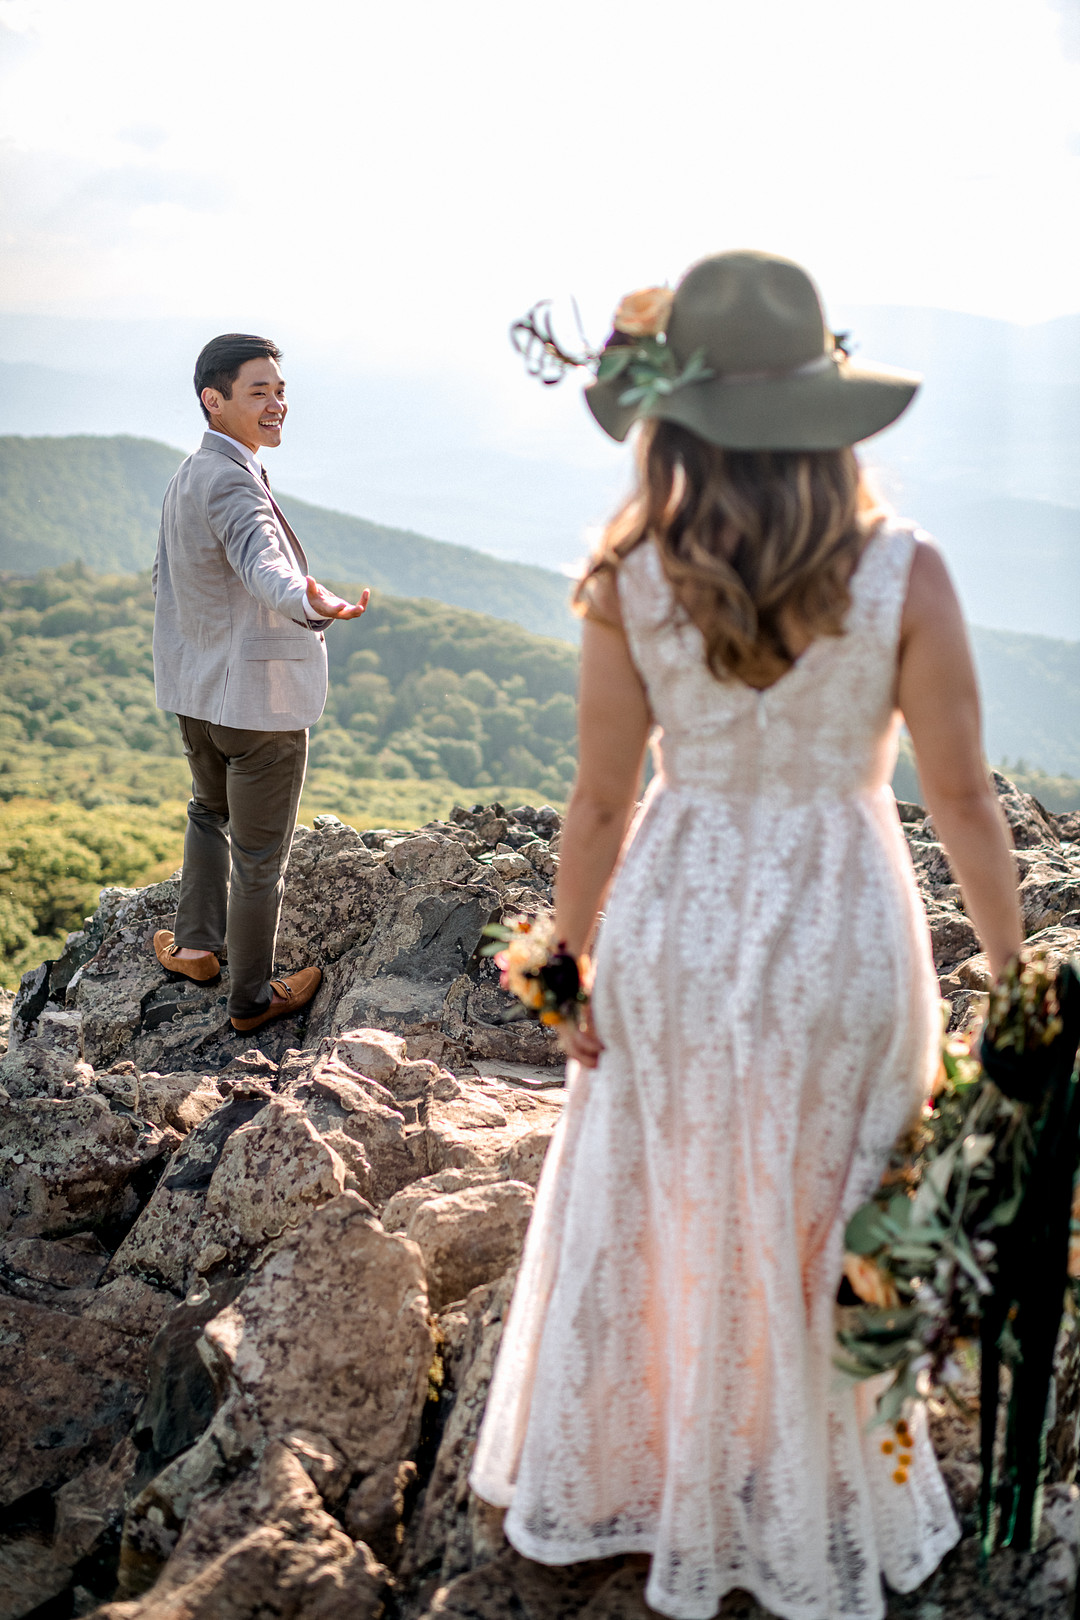 Boho Mountain Elopement in Shenandoah National Park_1001 Angles Photography_Shenandoah National Park Adventure Elopement-98_low